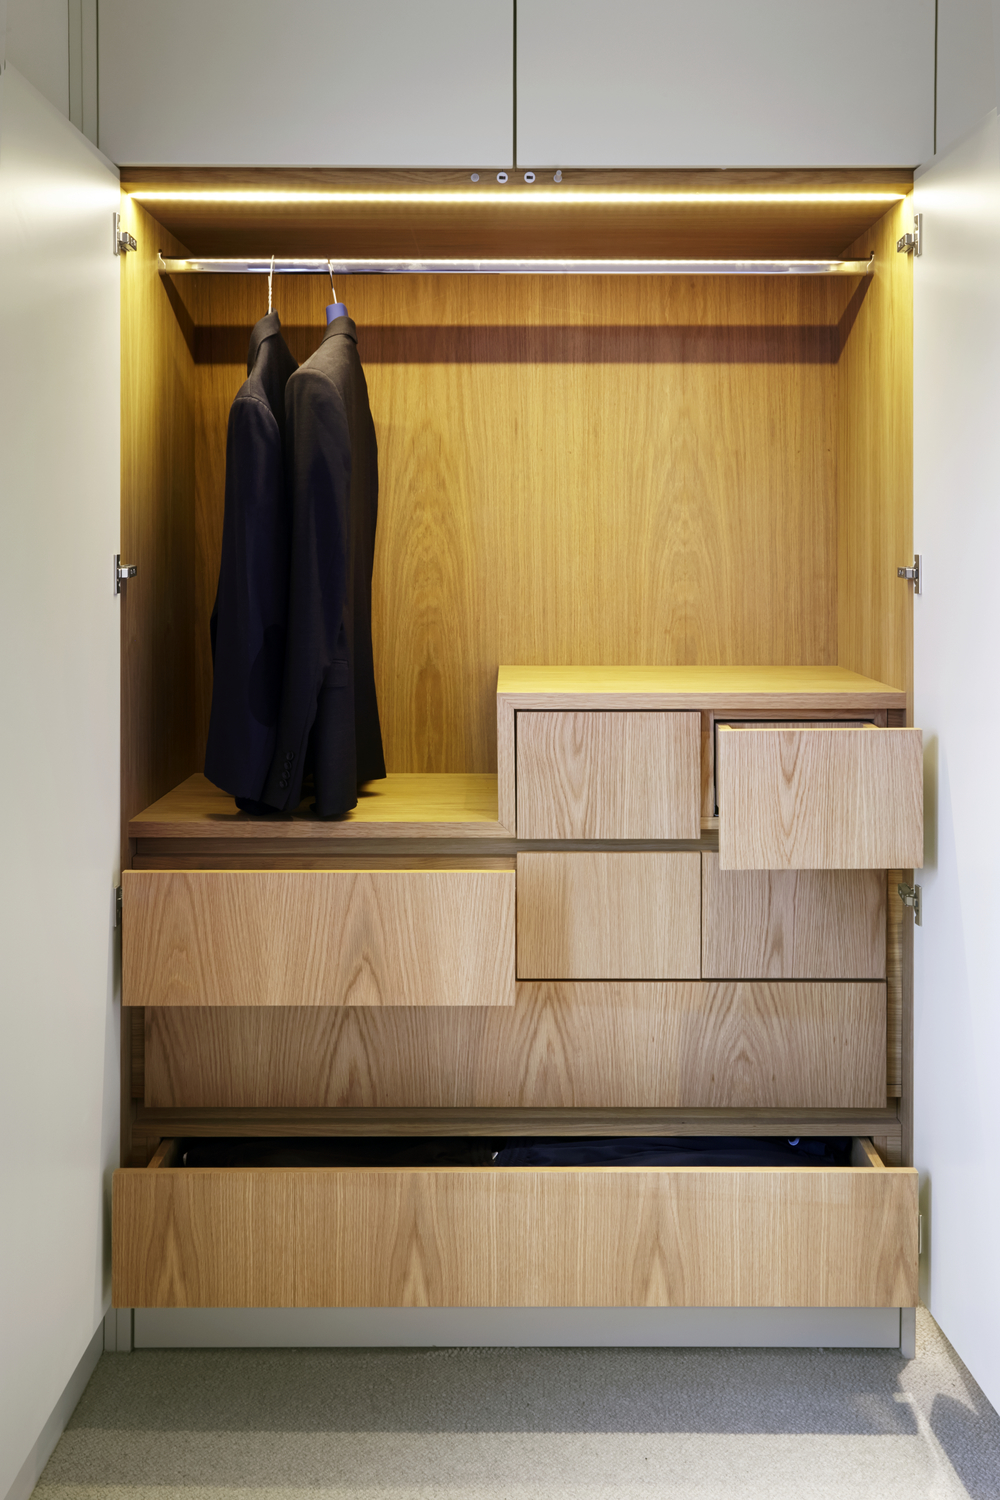 Bedroom Draw Unit - Photography - Jack Hobhouse